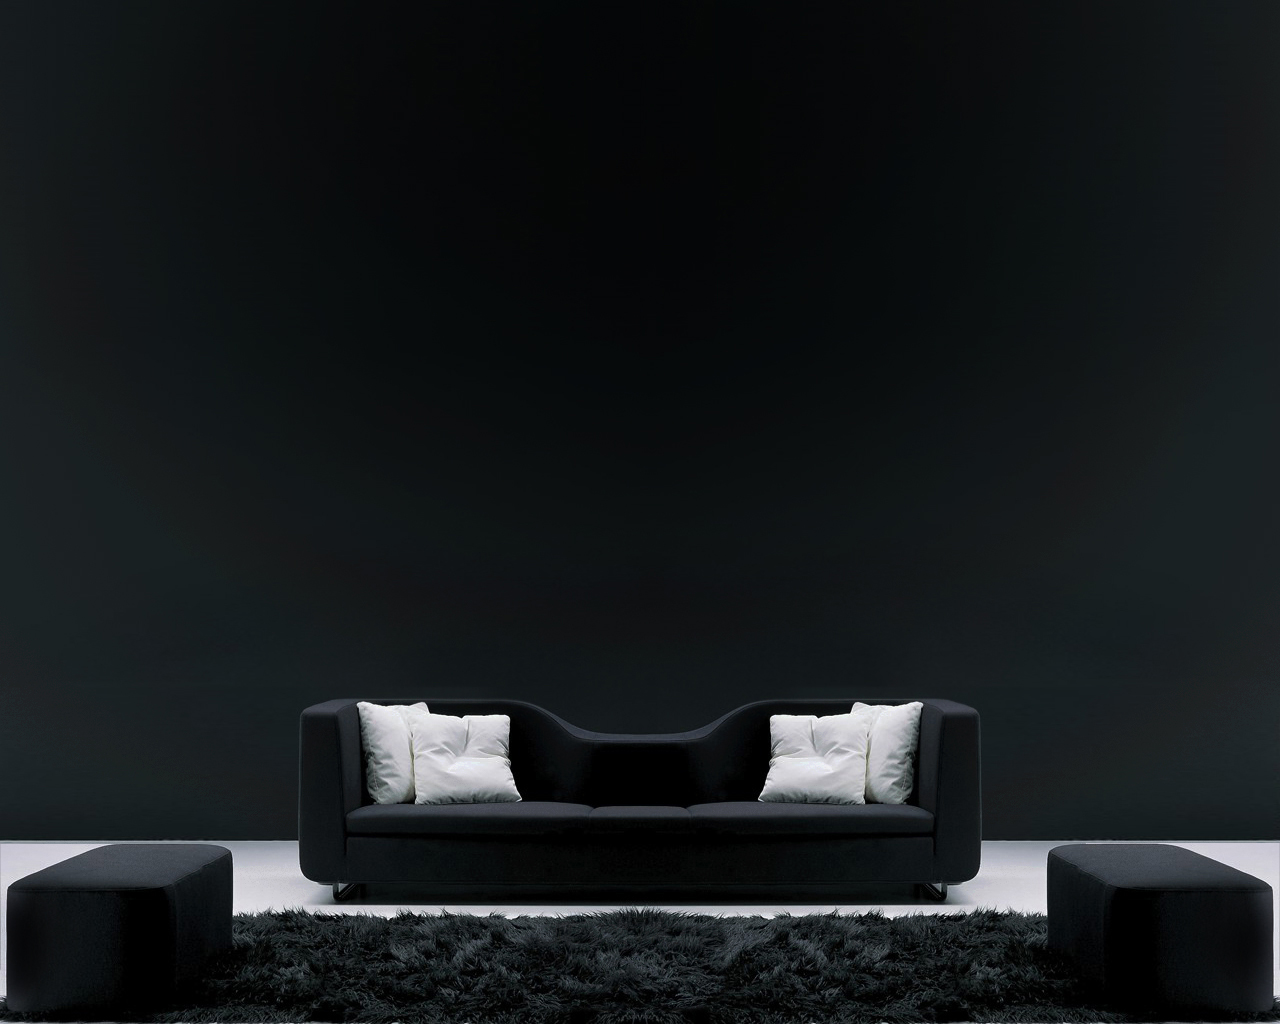 Black Couch White Fresh New Hd Wallpaper